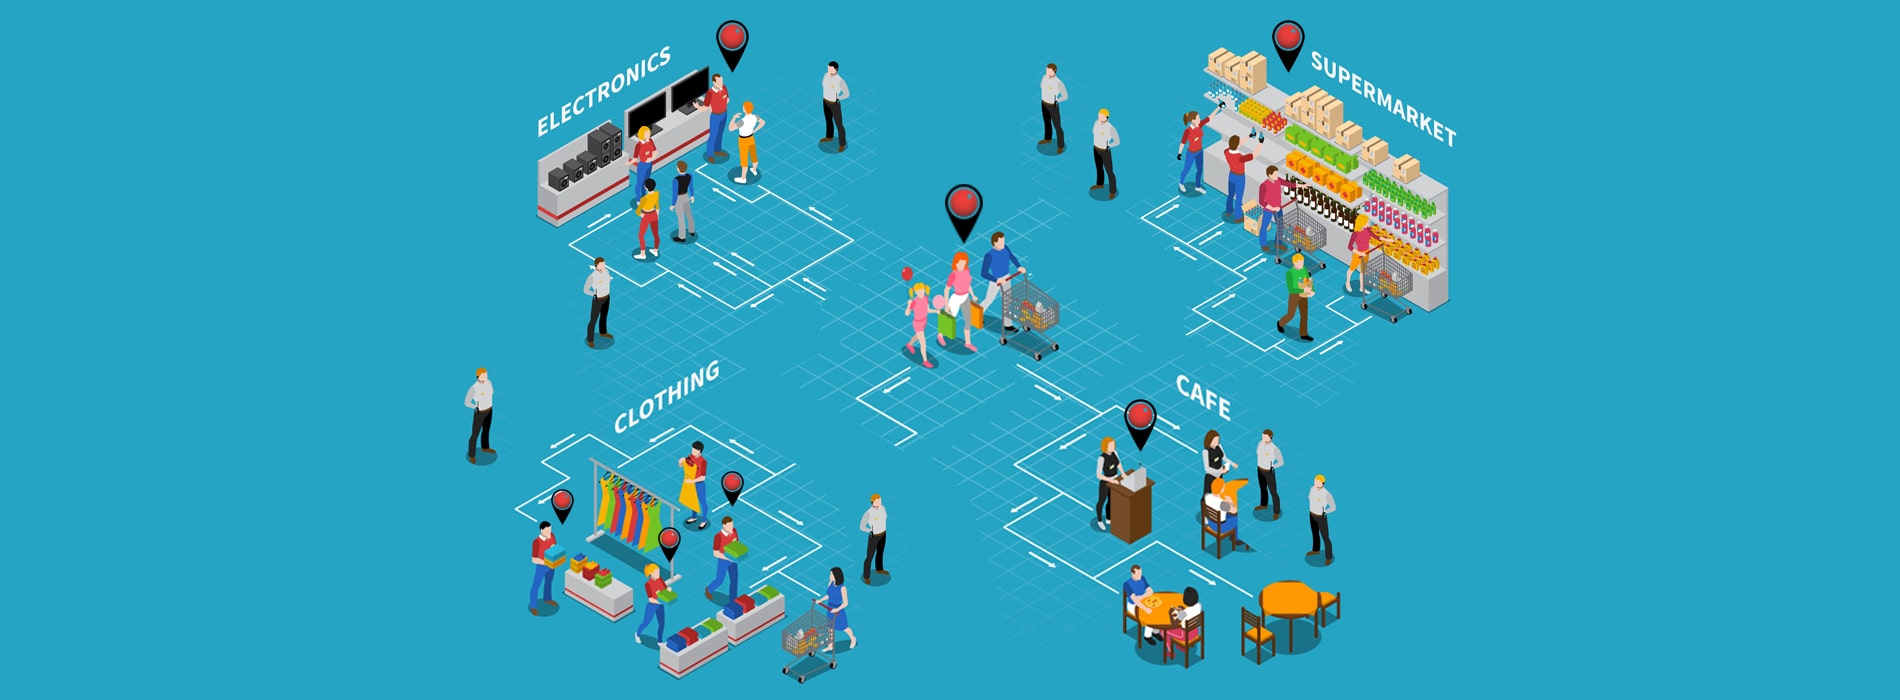 IoT Solutions for Retail Shops